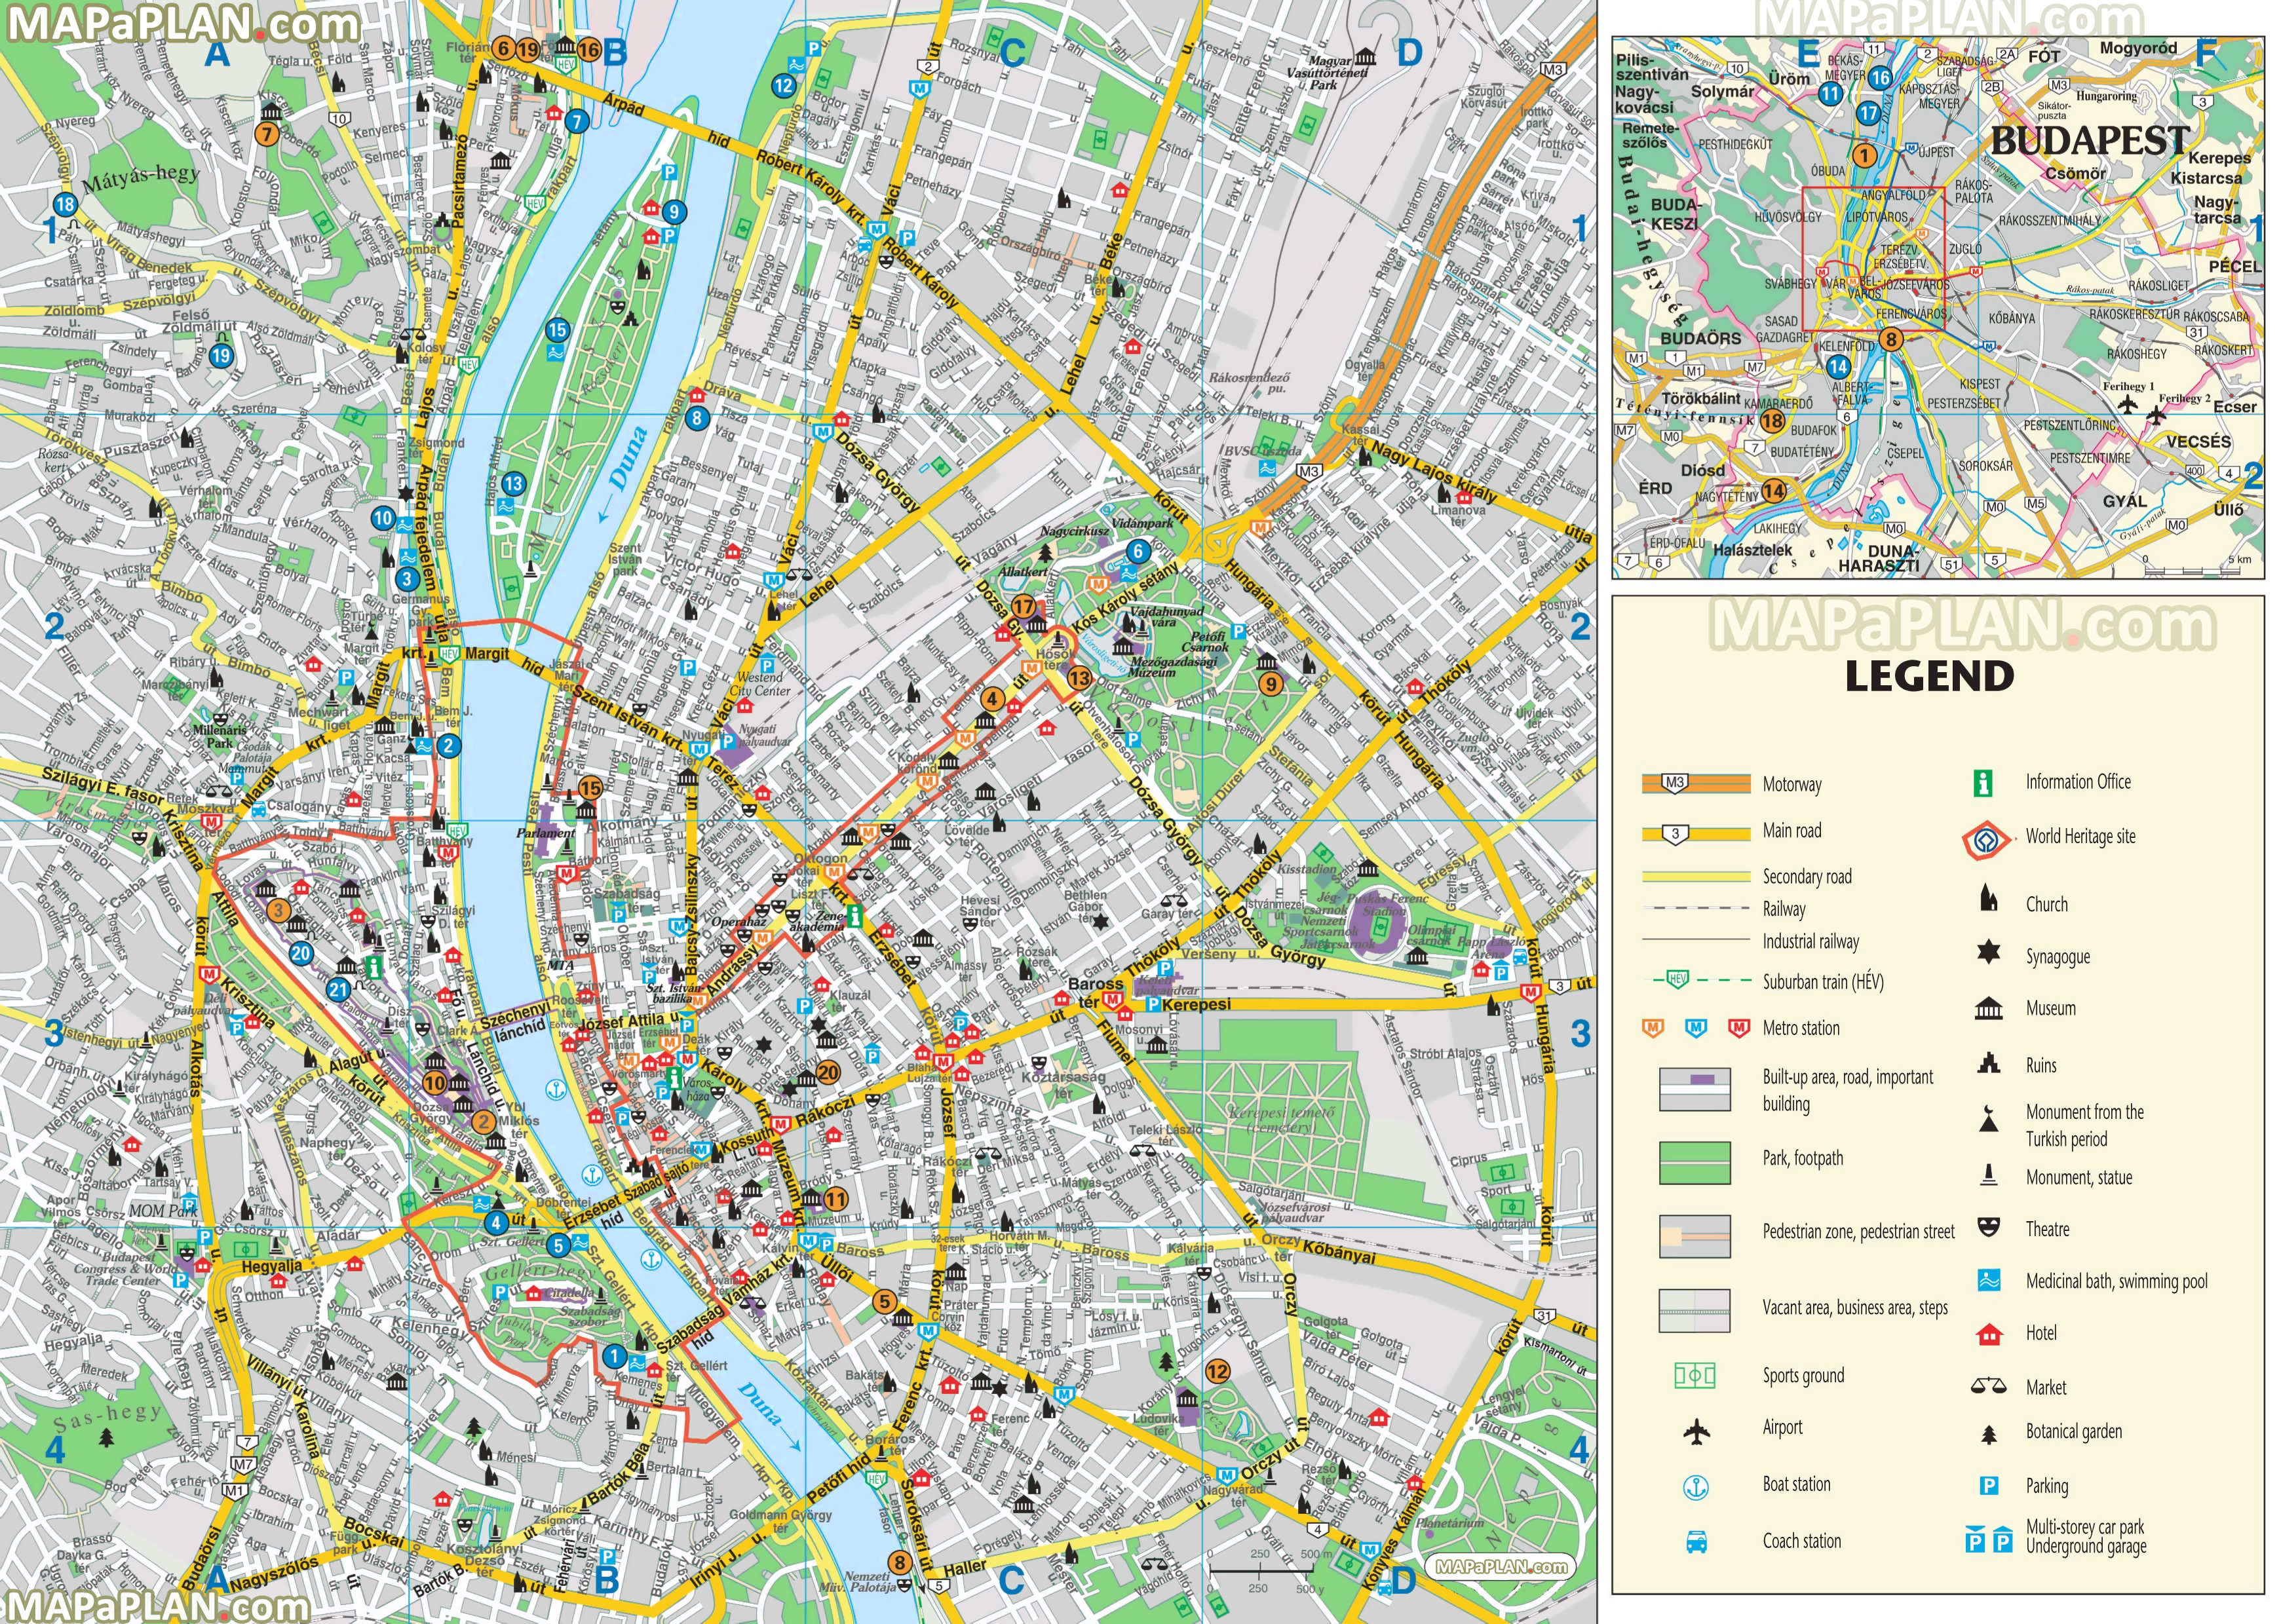 Budapest Tourist Map Budapest maps   Top tourist attractions   Free, printable city  Budapest Tourist Map